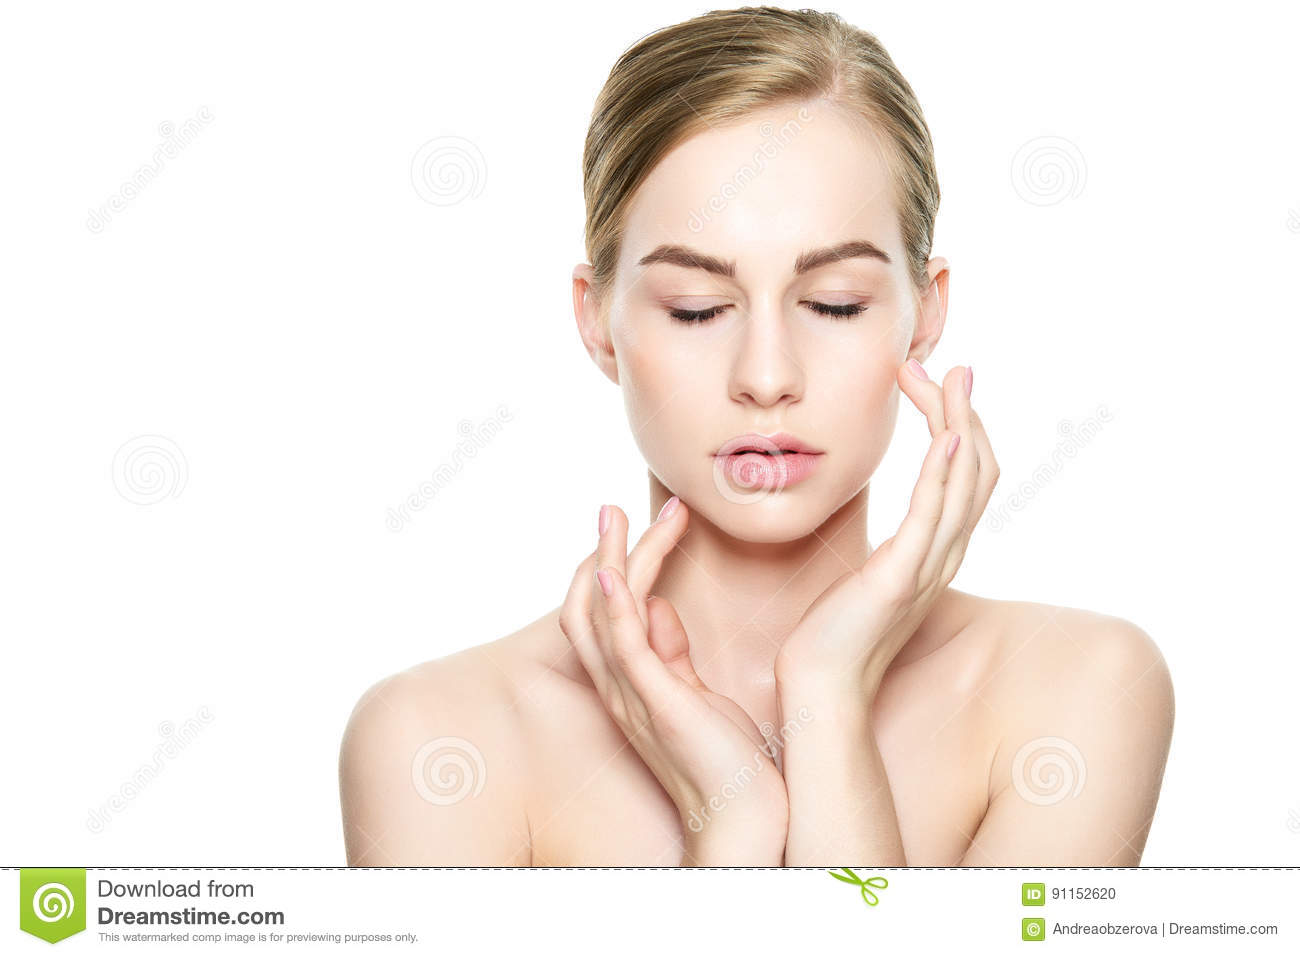 Beautiful Young Blond Woman with Perfect Skin touching her face. Facial treatment. Cosmetology, beauty and spa concept.